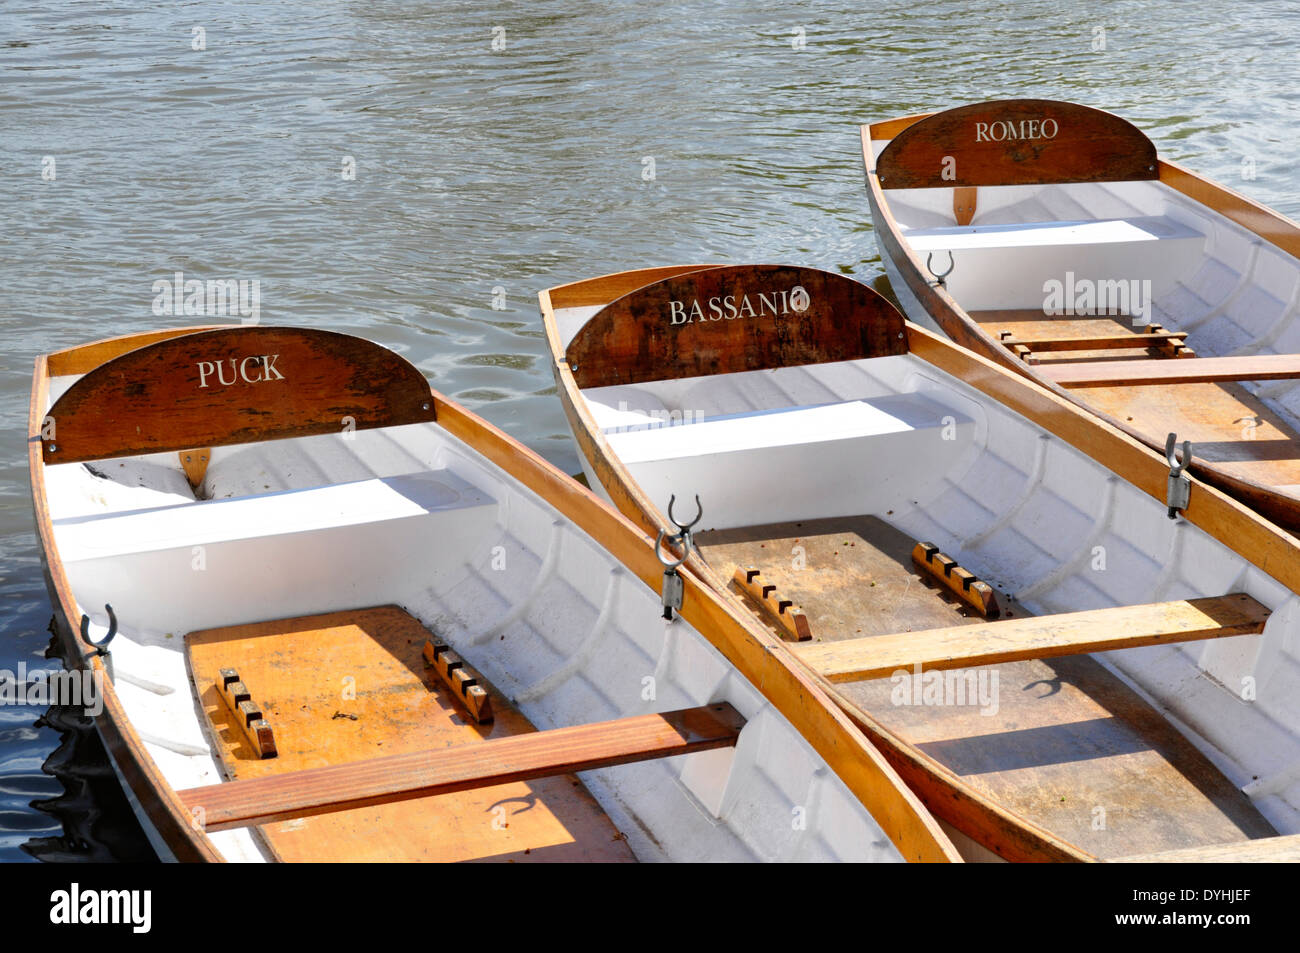 Stratford on Avon - by the river - rowing boats for hire - each boat named after a Shakespearean character - bright sunshine - Stock Image